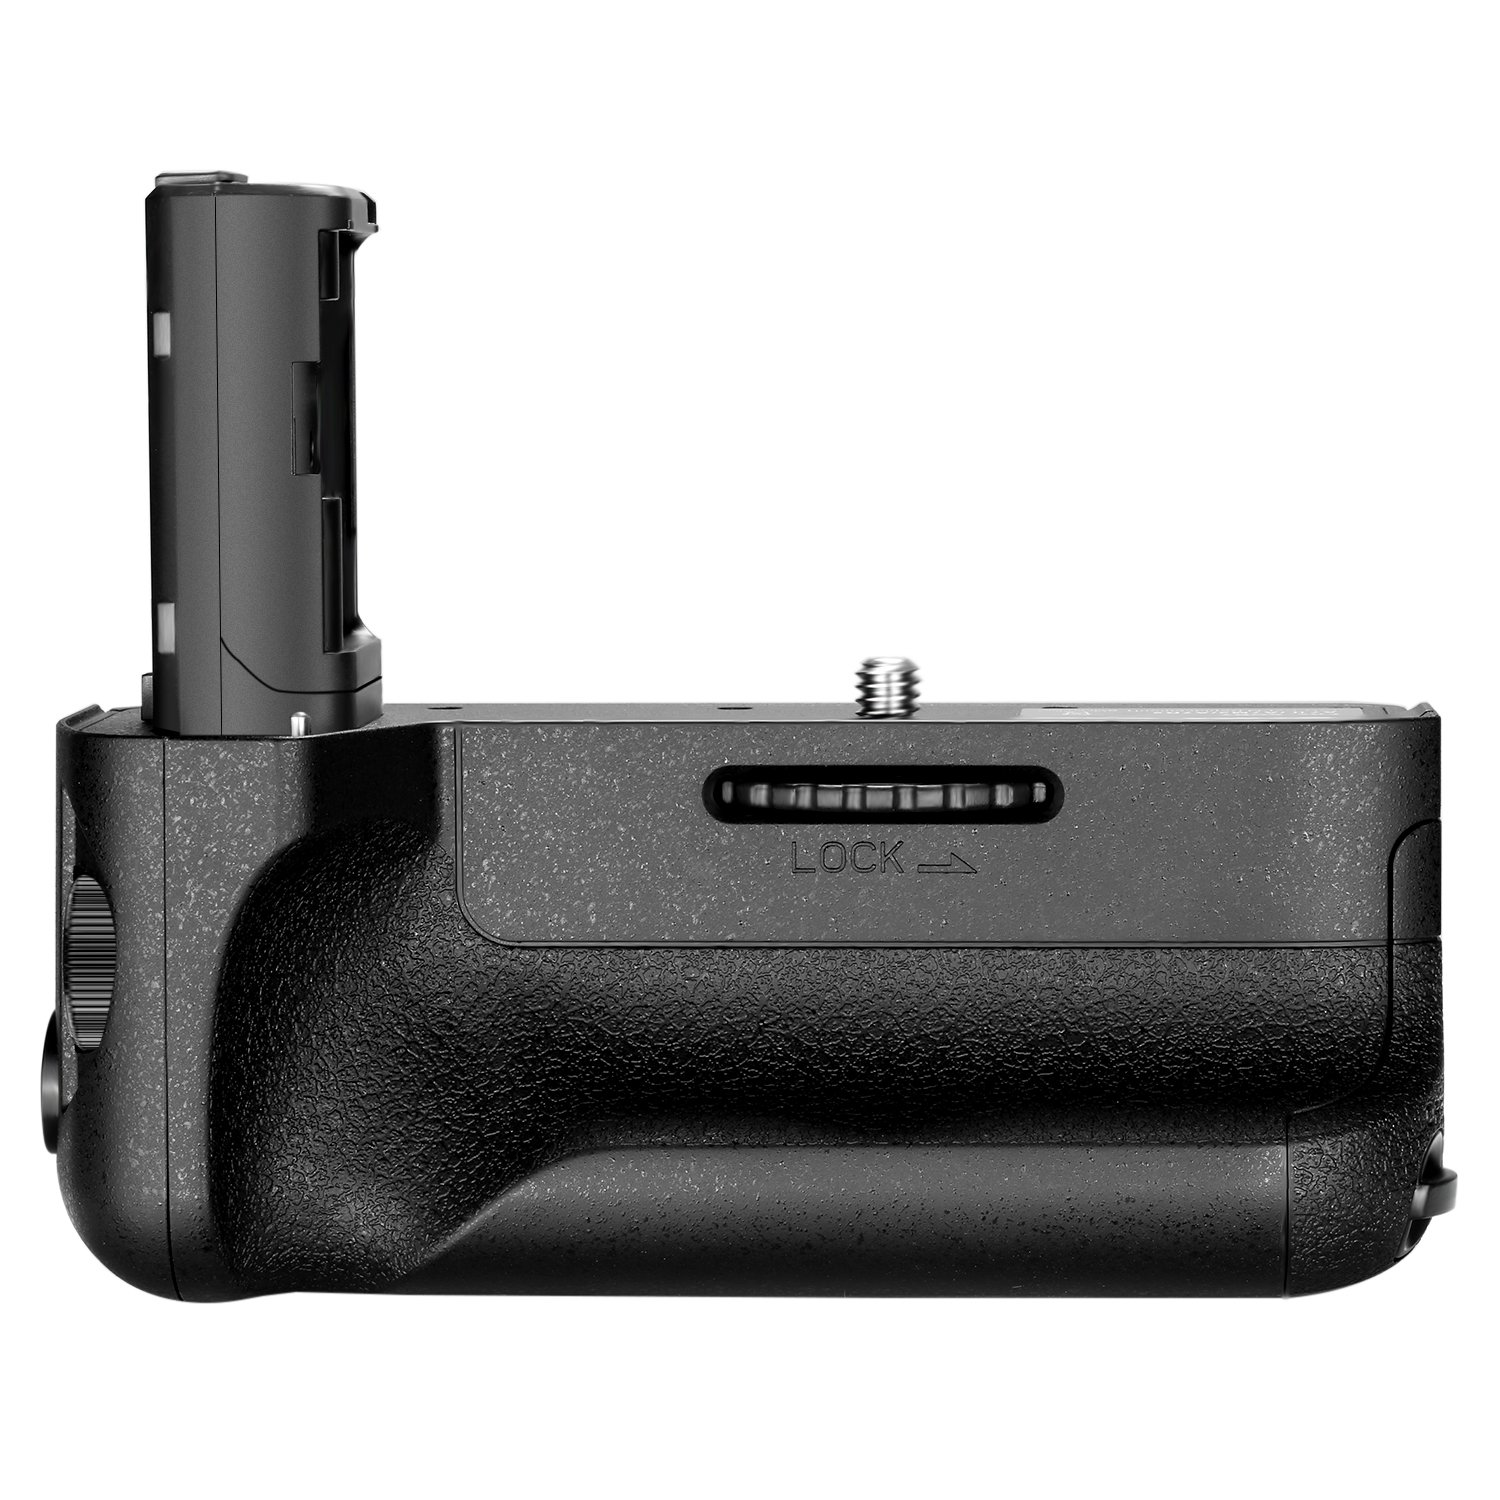 Neewer Vertical Battery Grip Replacement, Compatible with Sony VG-C2EM Works with NP-FW50 Battery for Sony A7 II A7S II and A7R II Cameras (Battery NOT Included)